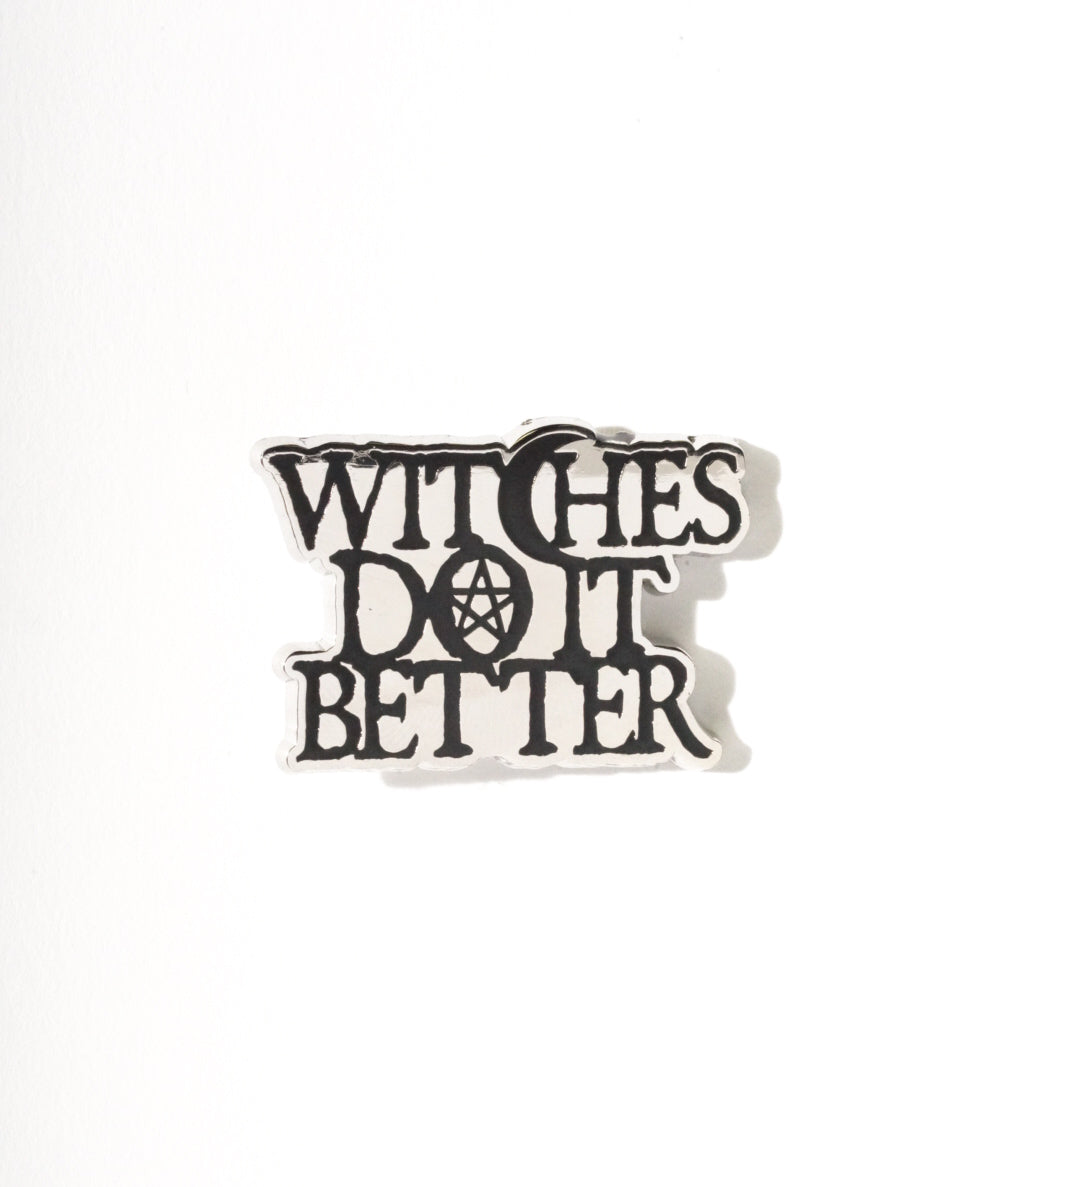 Witches Do It Better - Collectors Pin